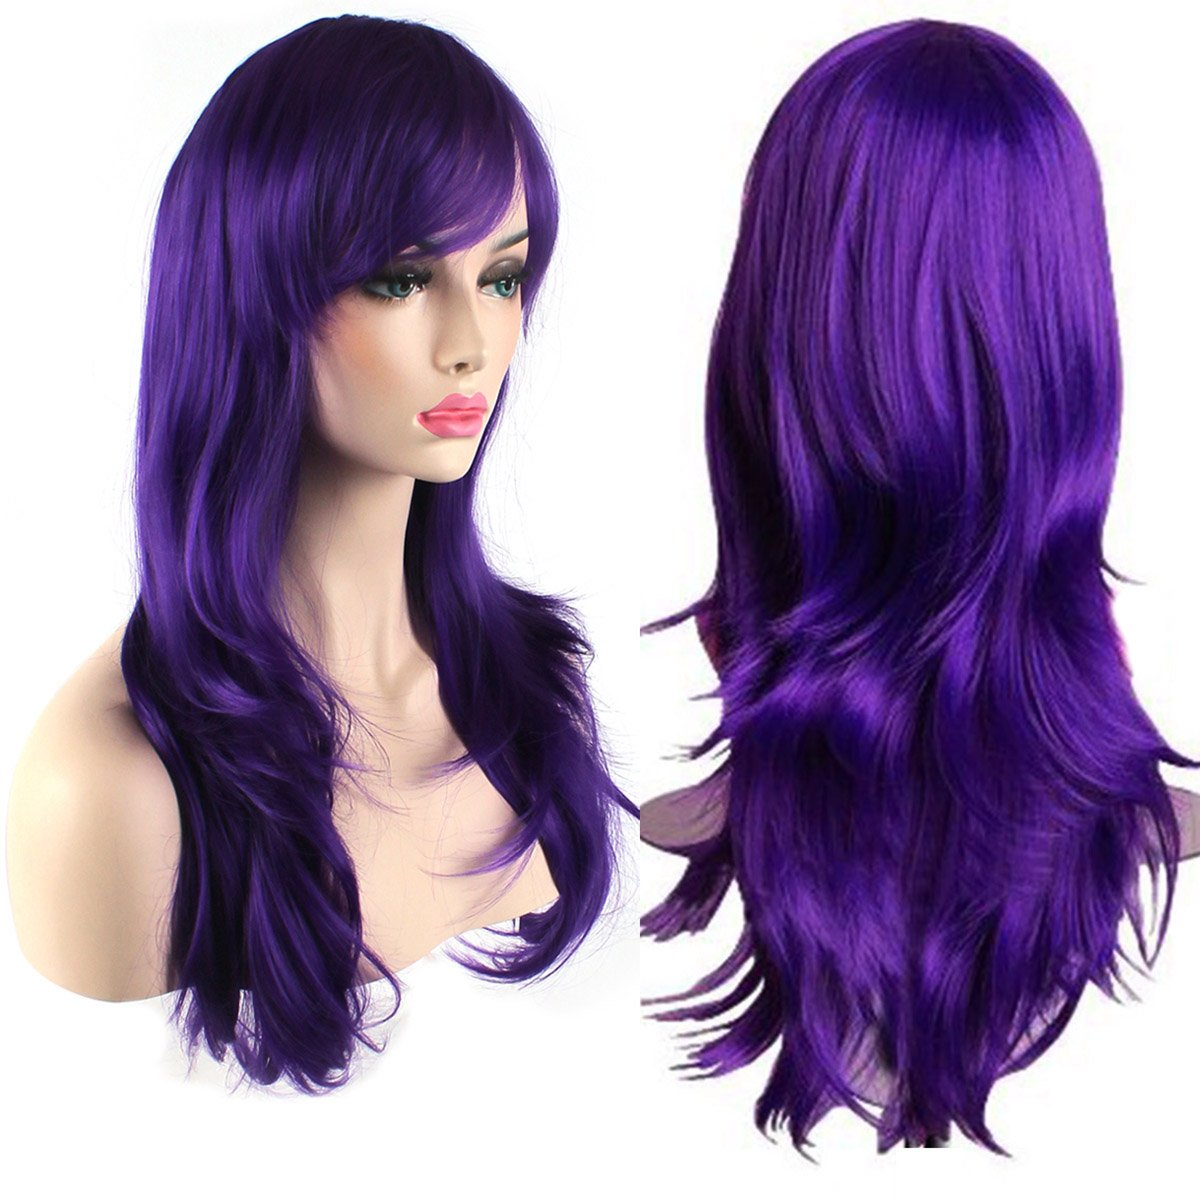 AKStore Women's Heat Resistant 28-Inch 70cm Long Curly Hair Wig with Wig Cap, Purple by Akstore